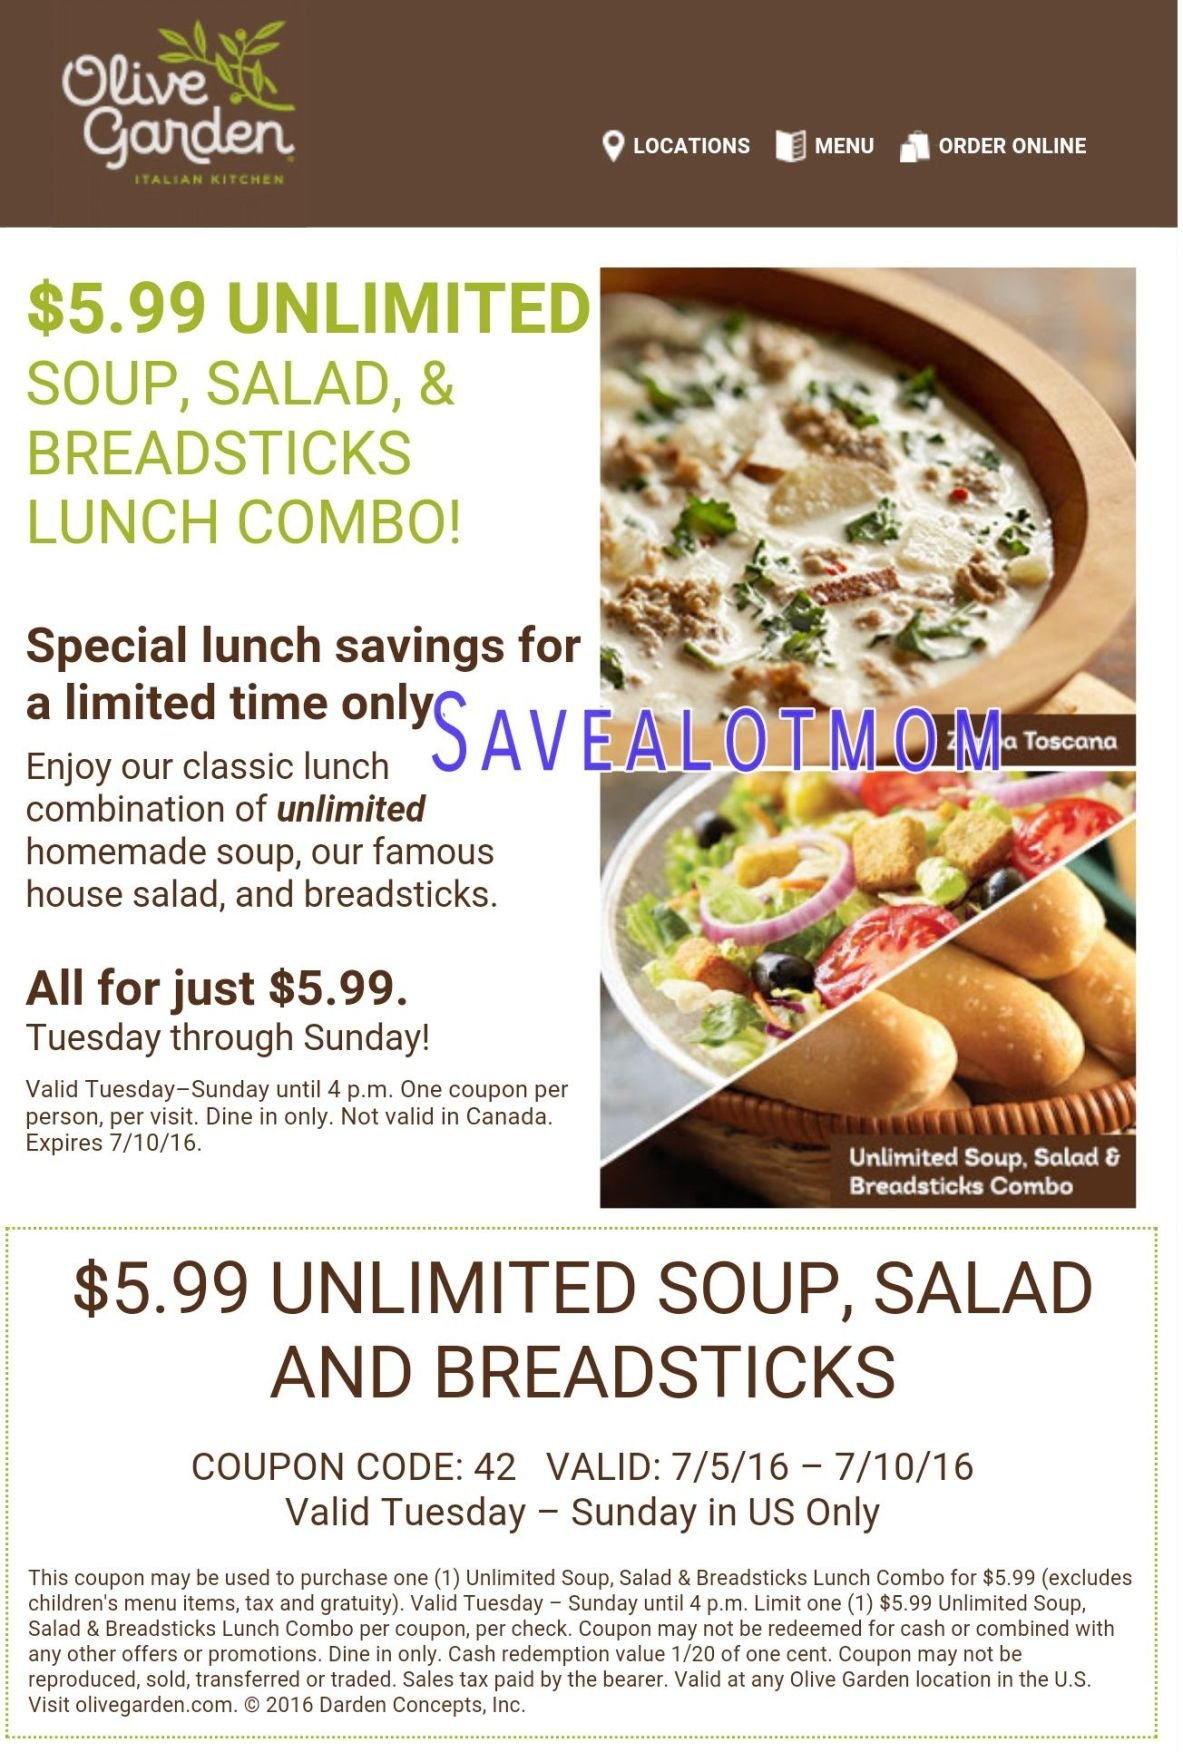 olive garden599 for unlimited soup salad and breadsticks - Olive Garden Lunch Time